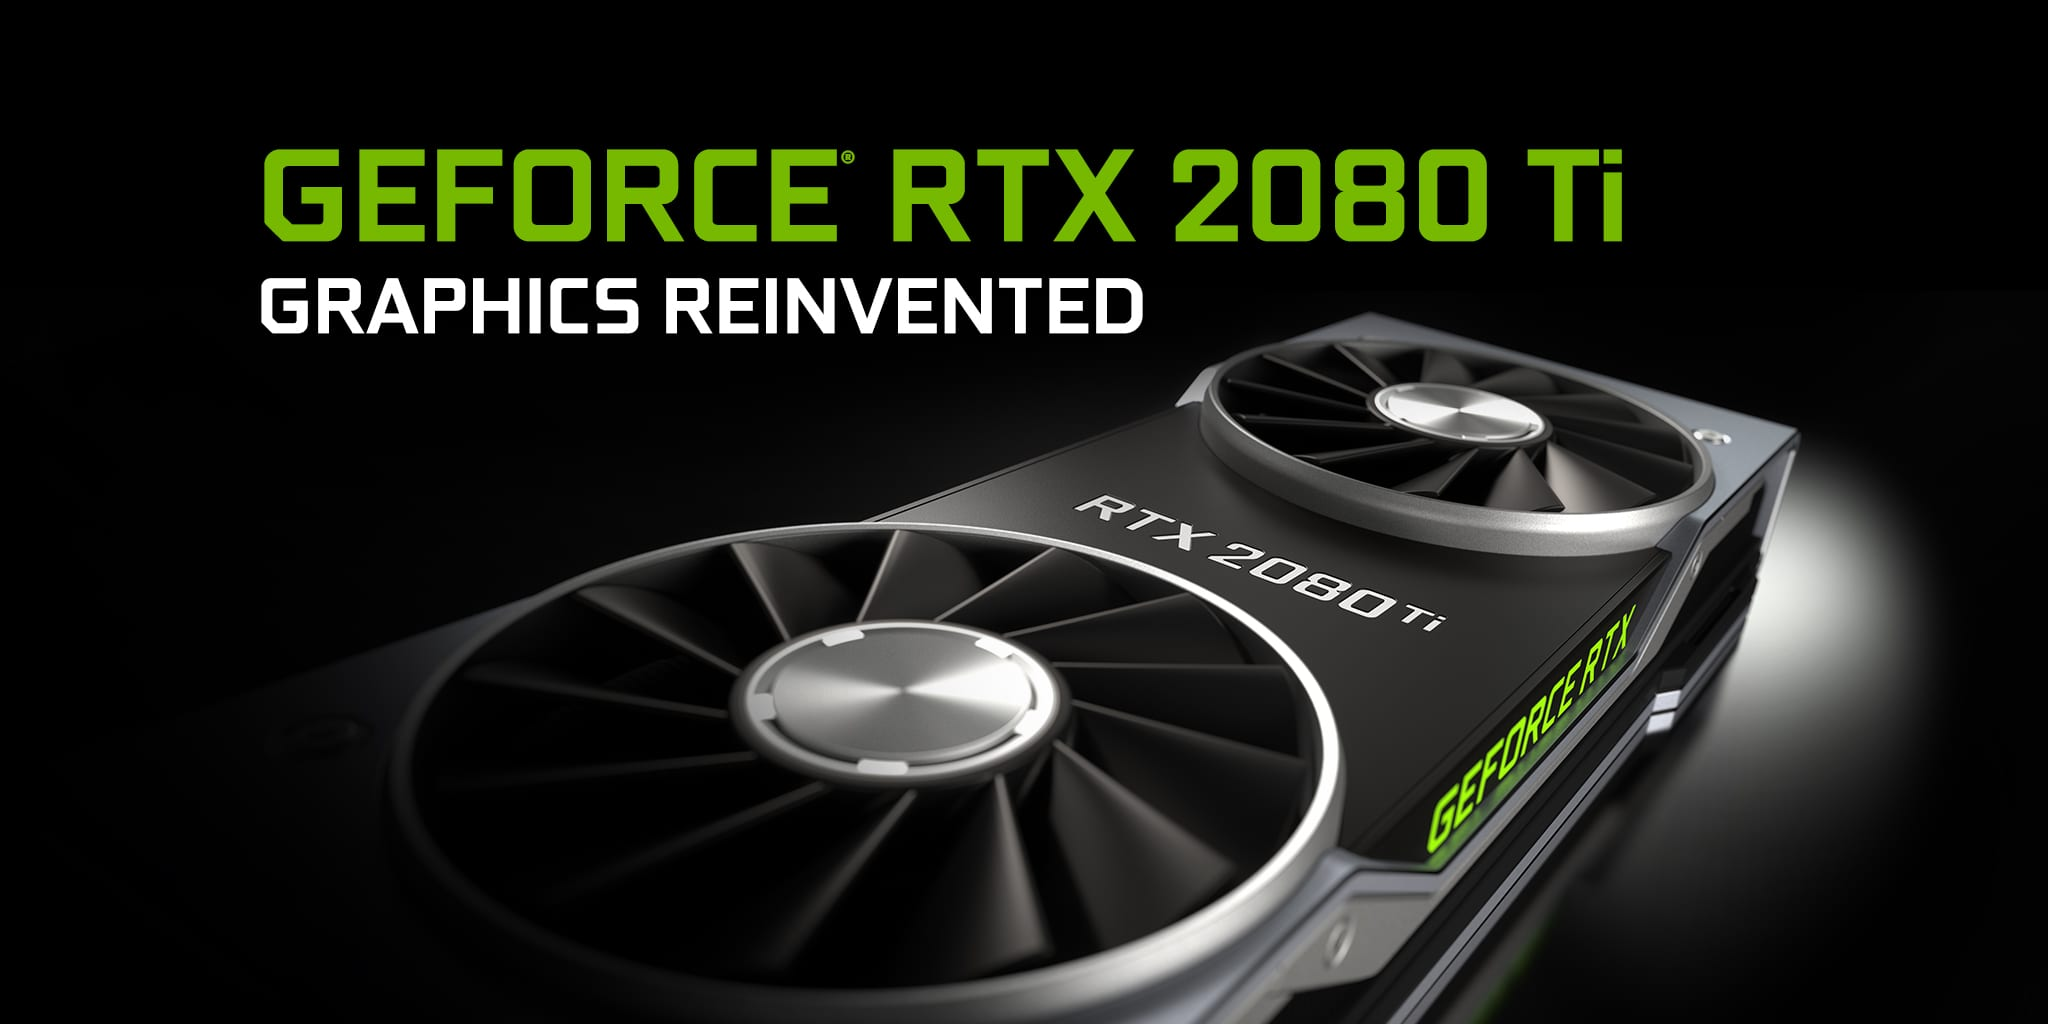 Nvidia GeForce RTX 2080 Ti Release Postponed To September 27th